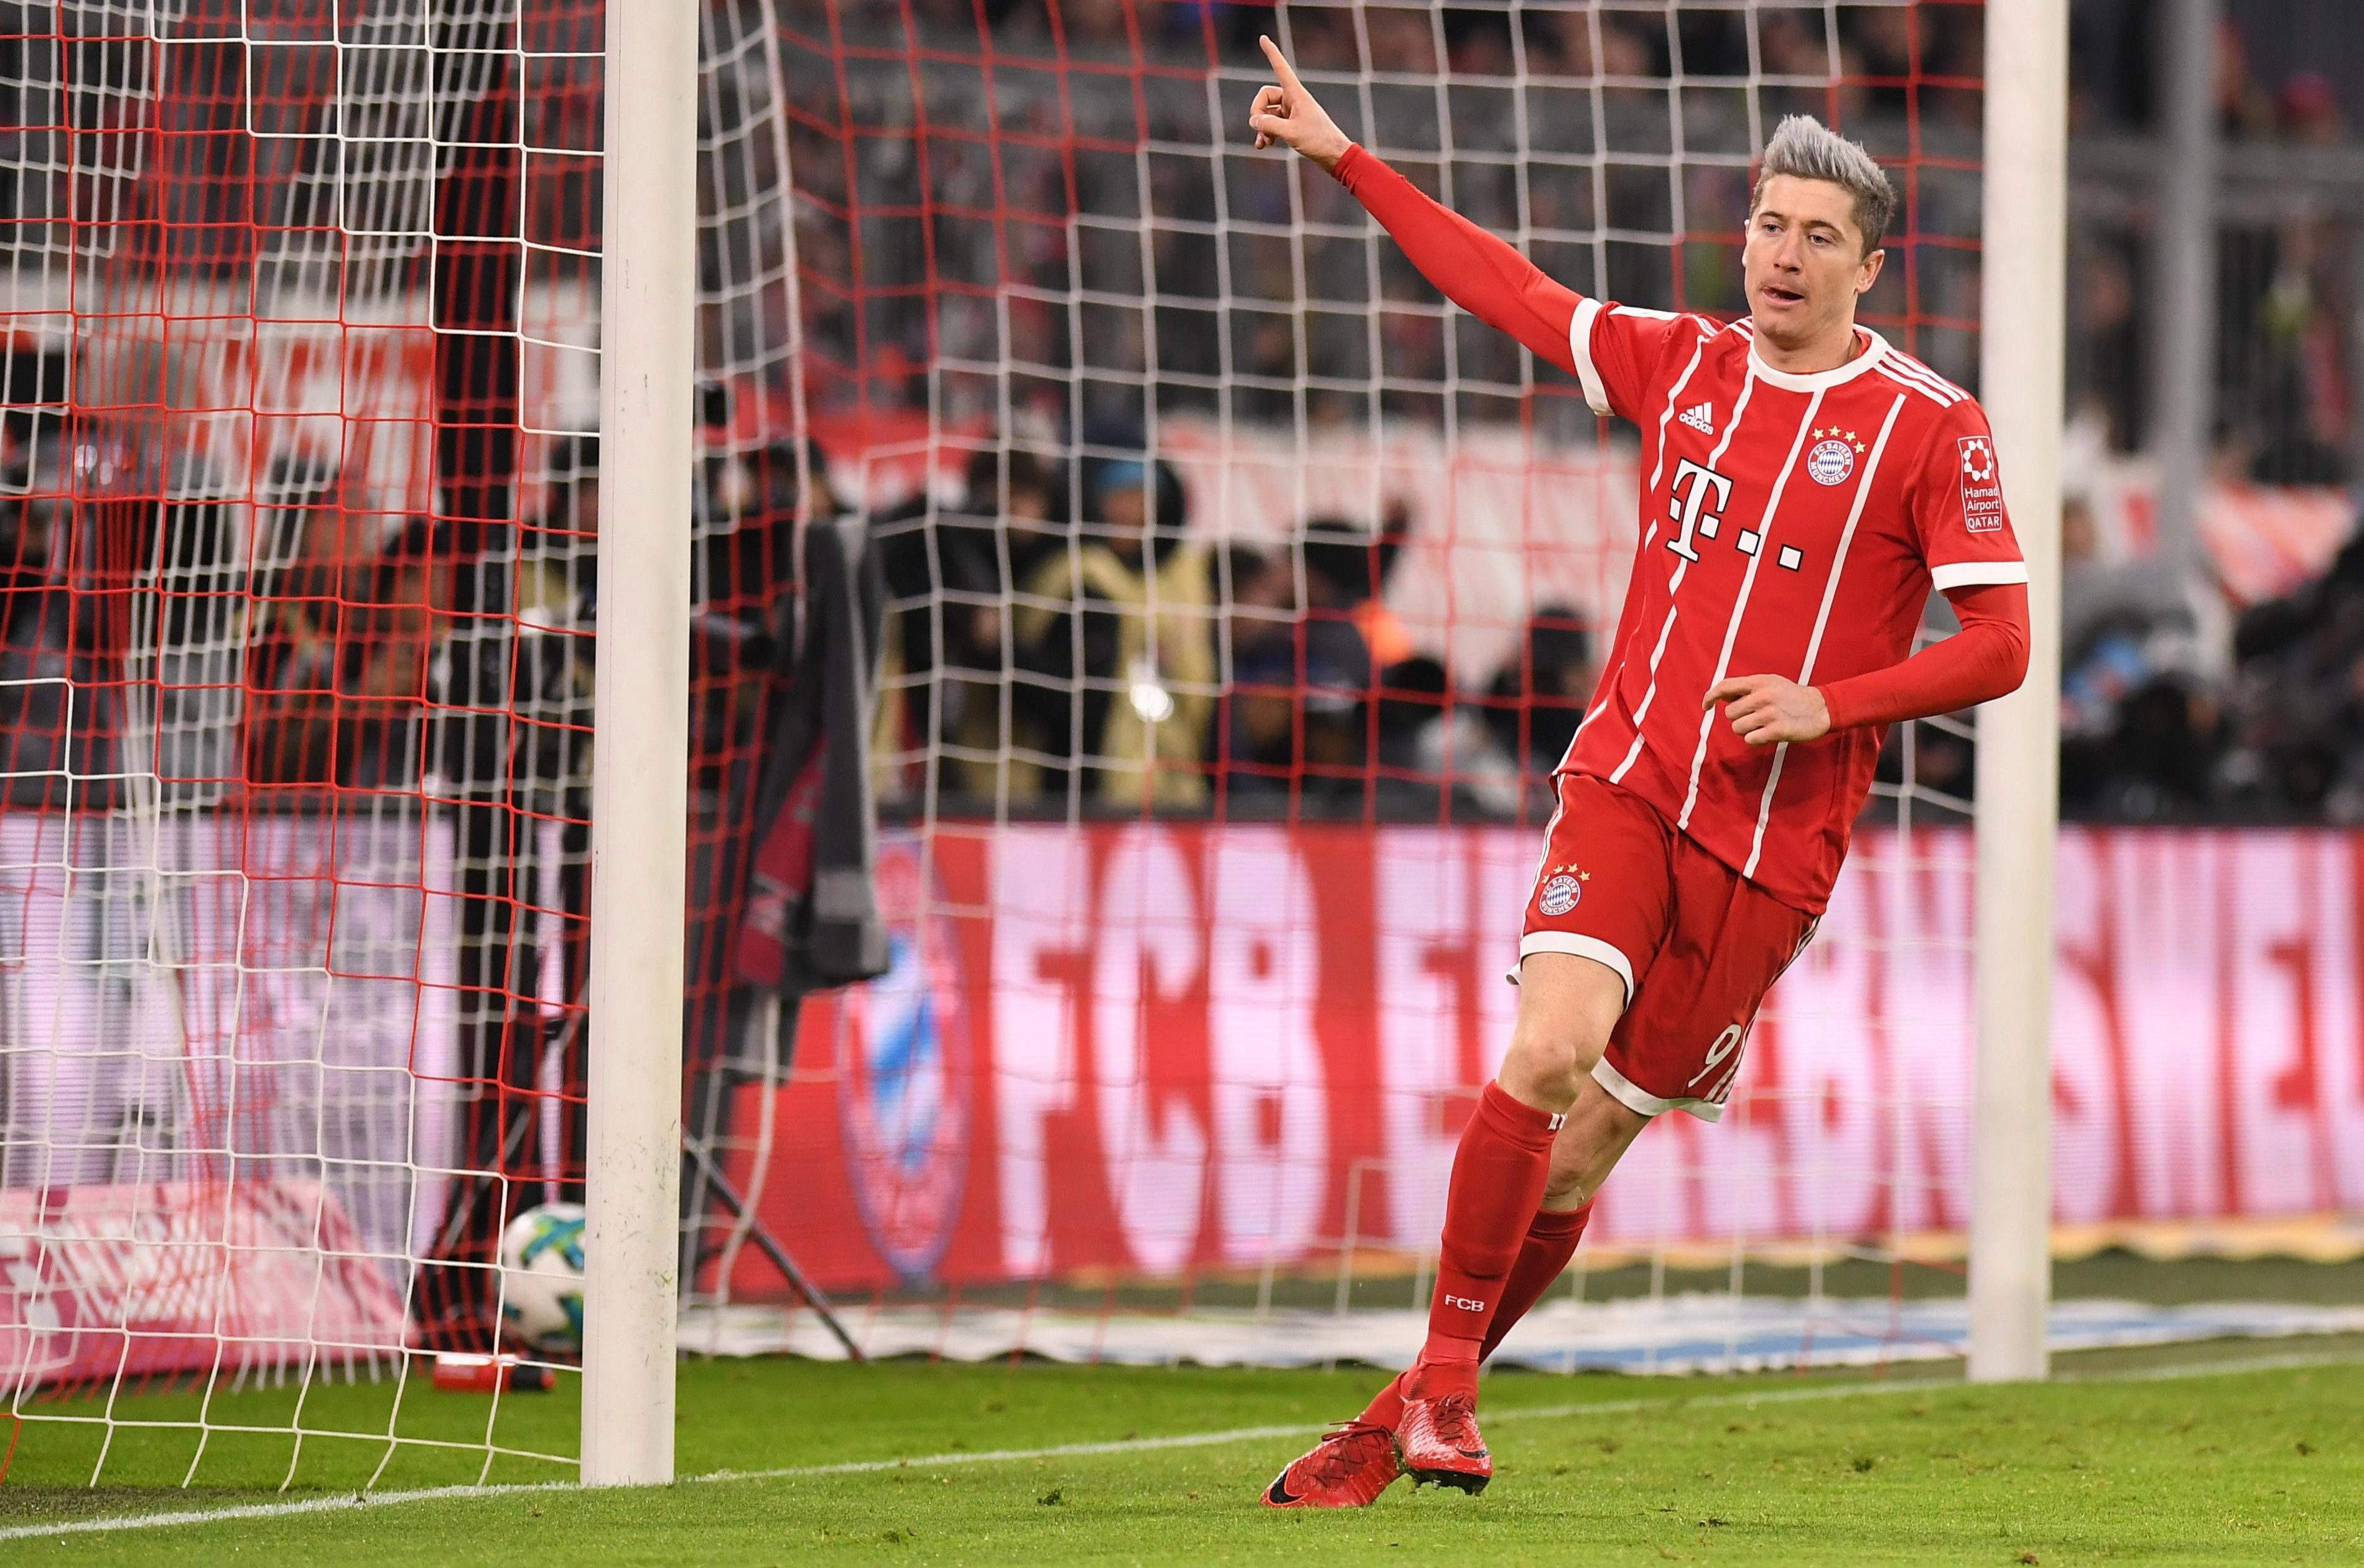 Lewy moved into the top ten all-time Bundesliga scorers with his goal against Koln in December